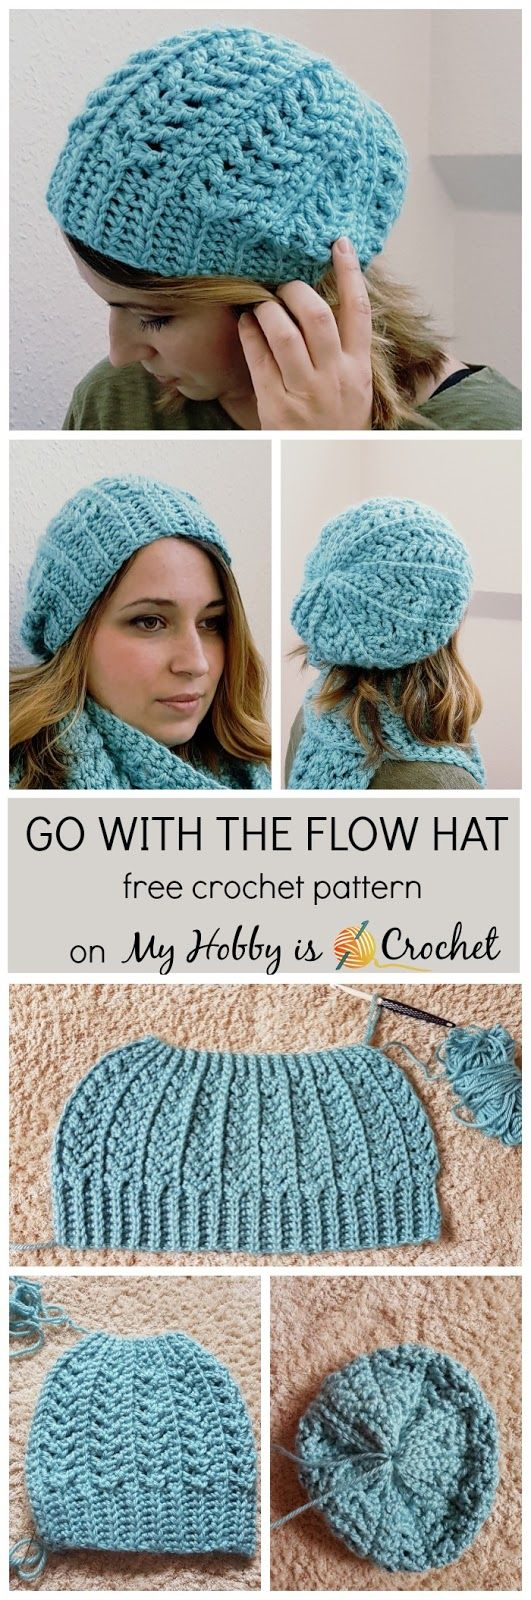 Best 25 crochet hat patterns ideas on pinterest crochet hats go with the flow hat free crochet pattern on myhobbyiscrochet bankloansurffo Images